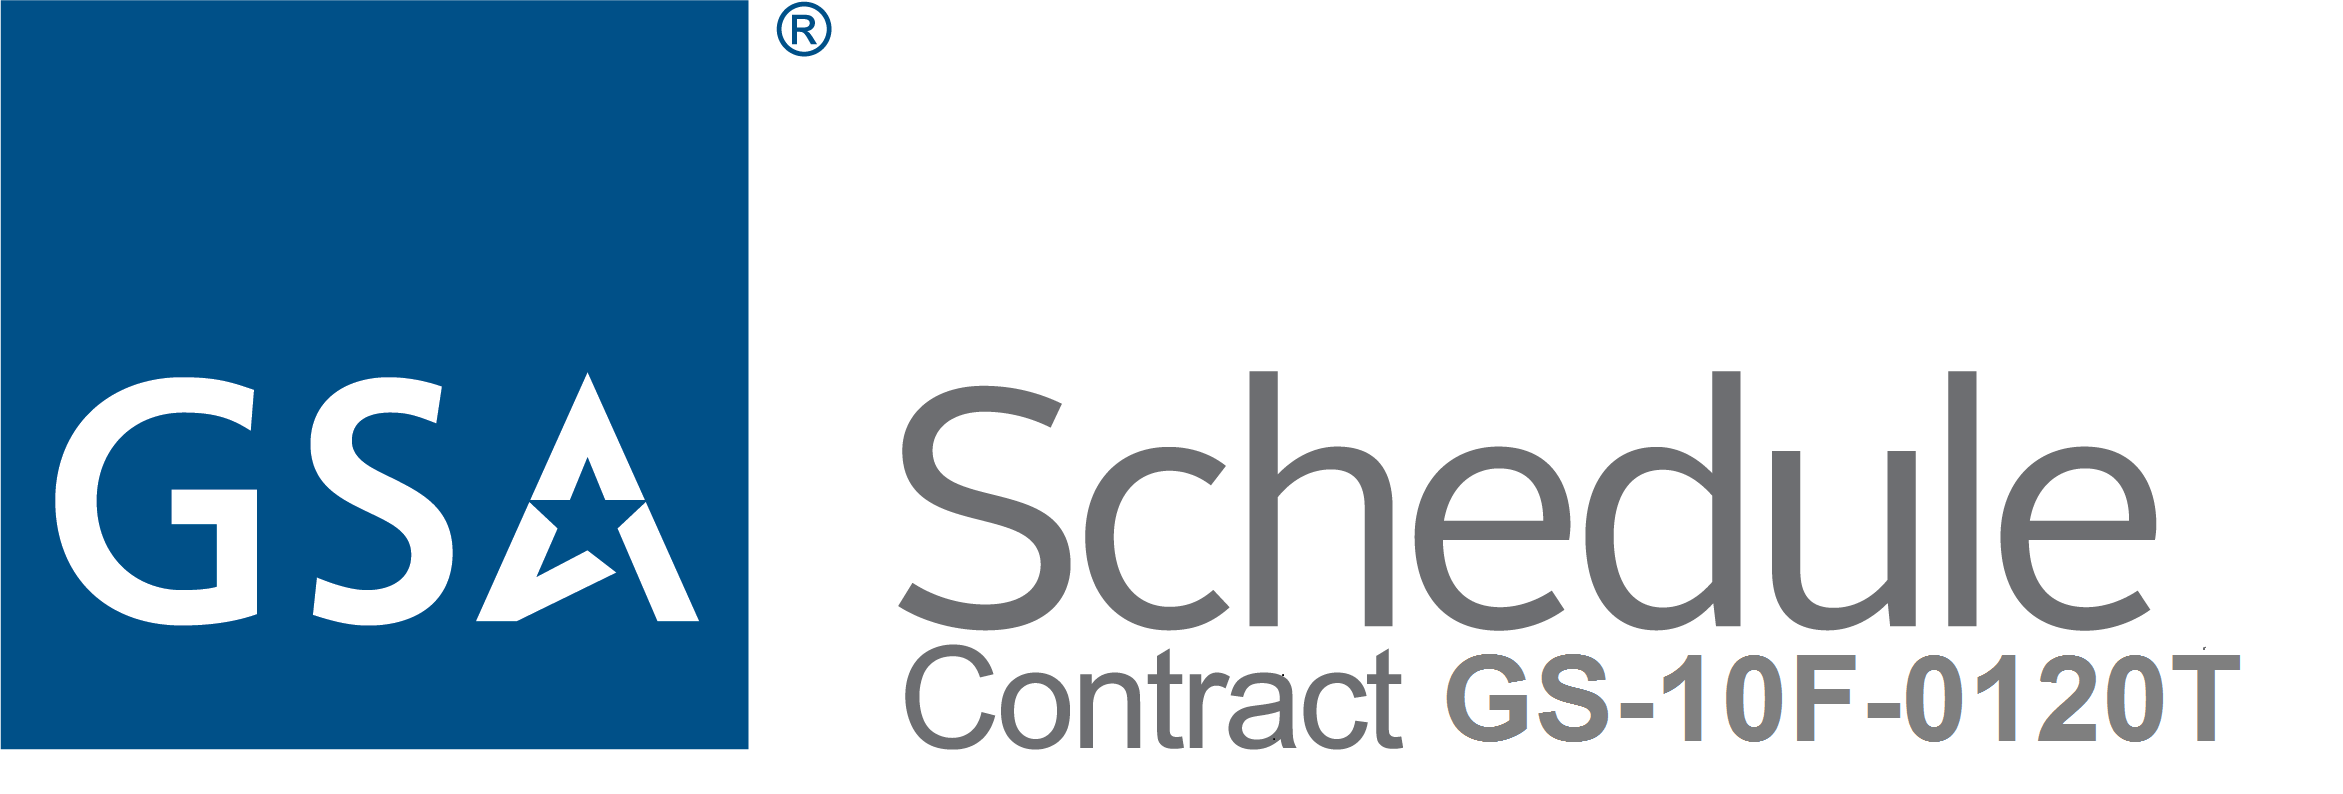 GSA Schedule_Contract_Number